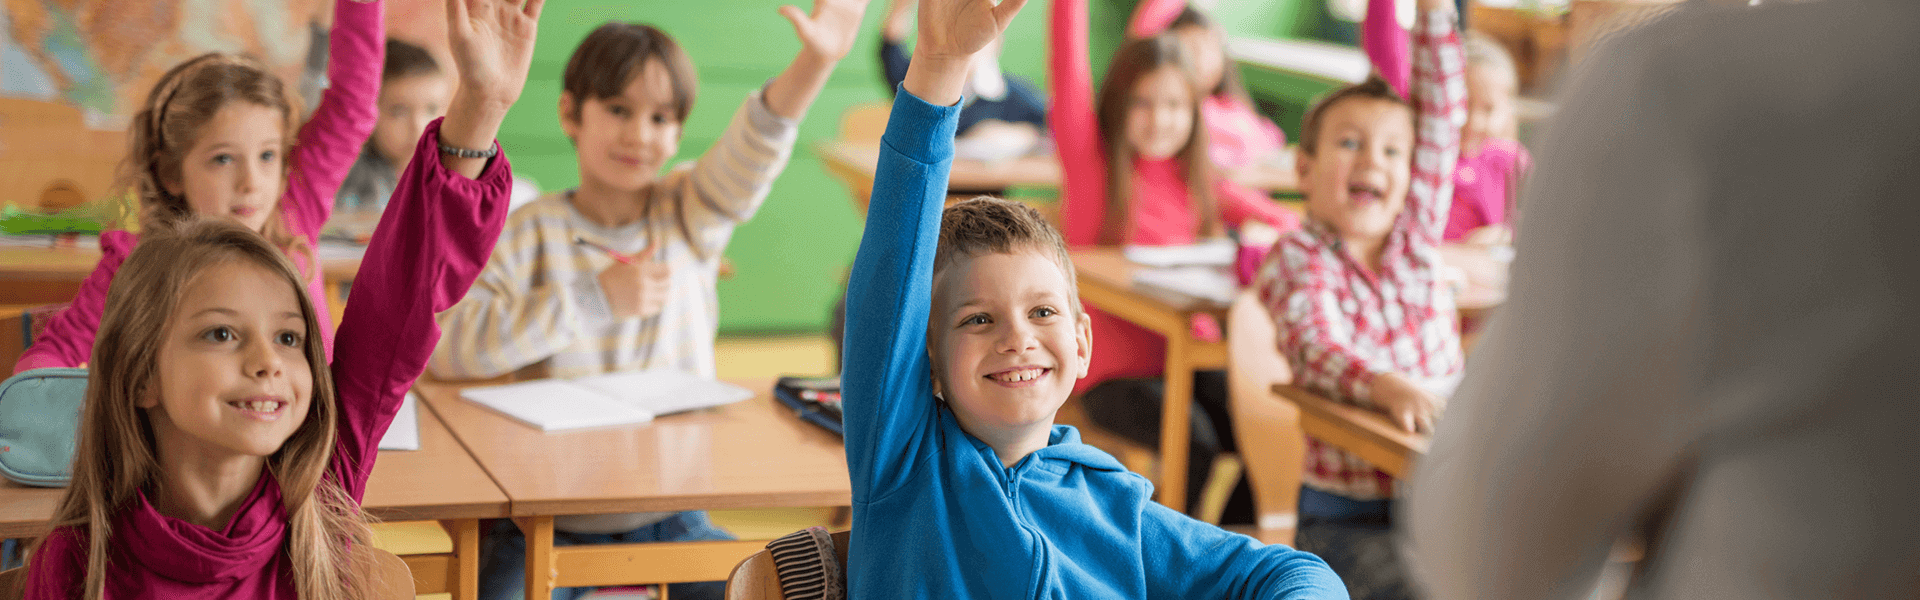 The 7 Key Benefits of a Montessori Education for Your Child